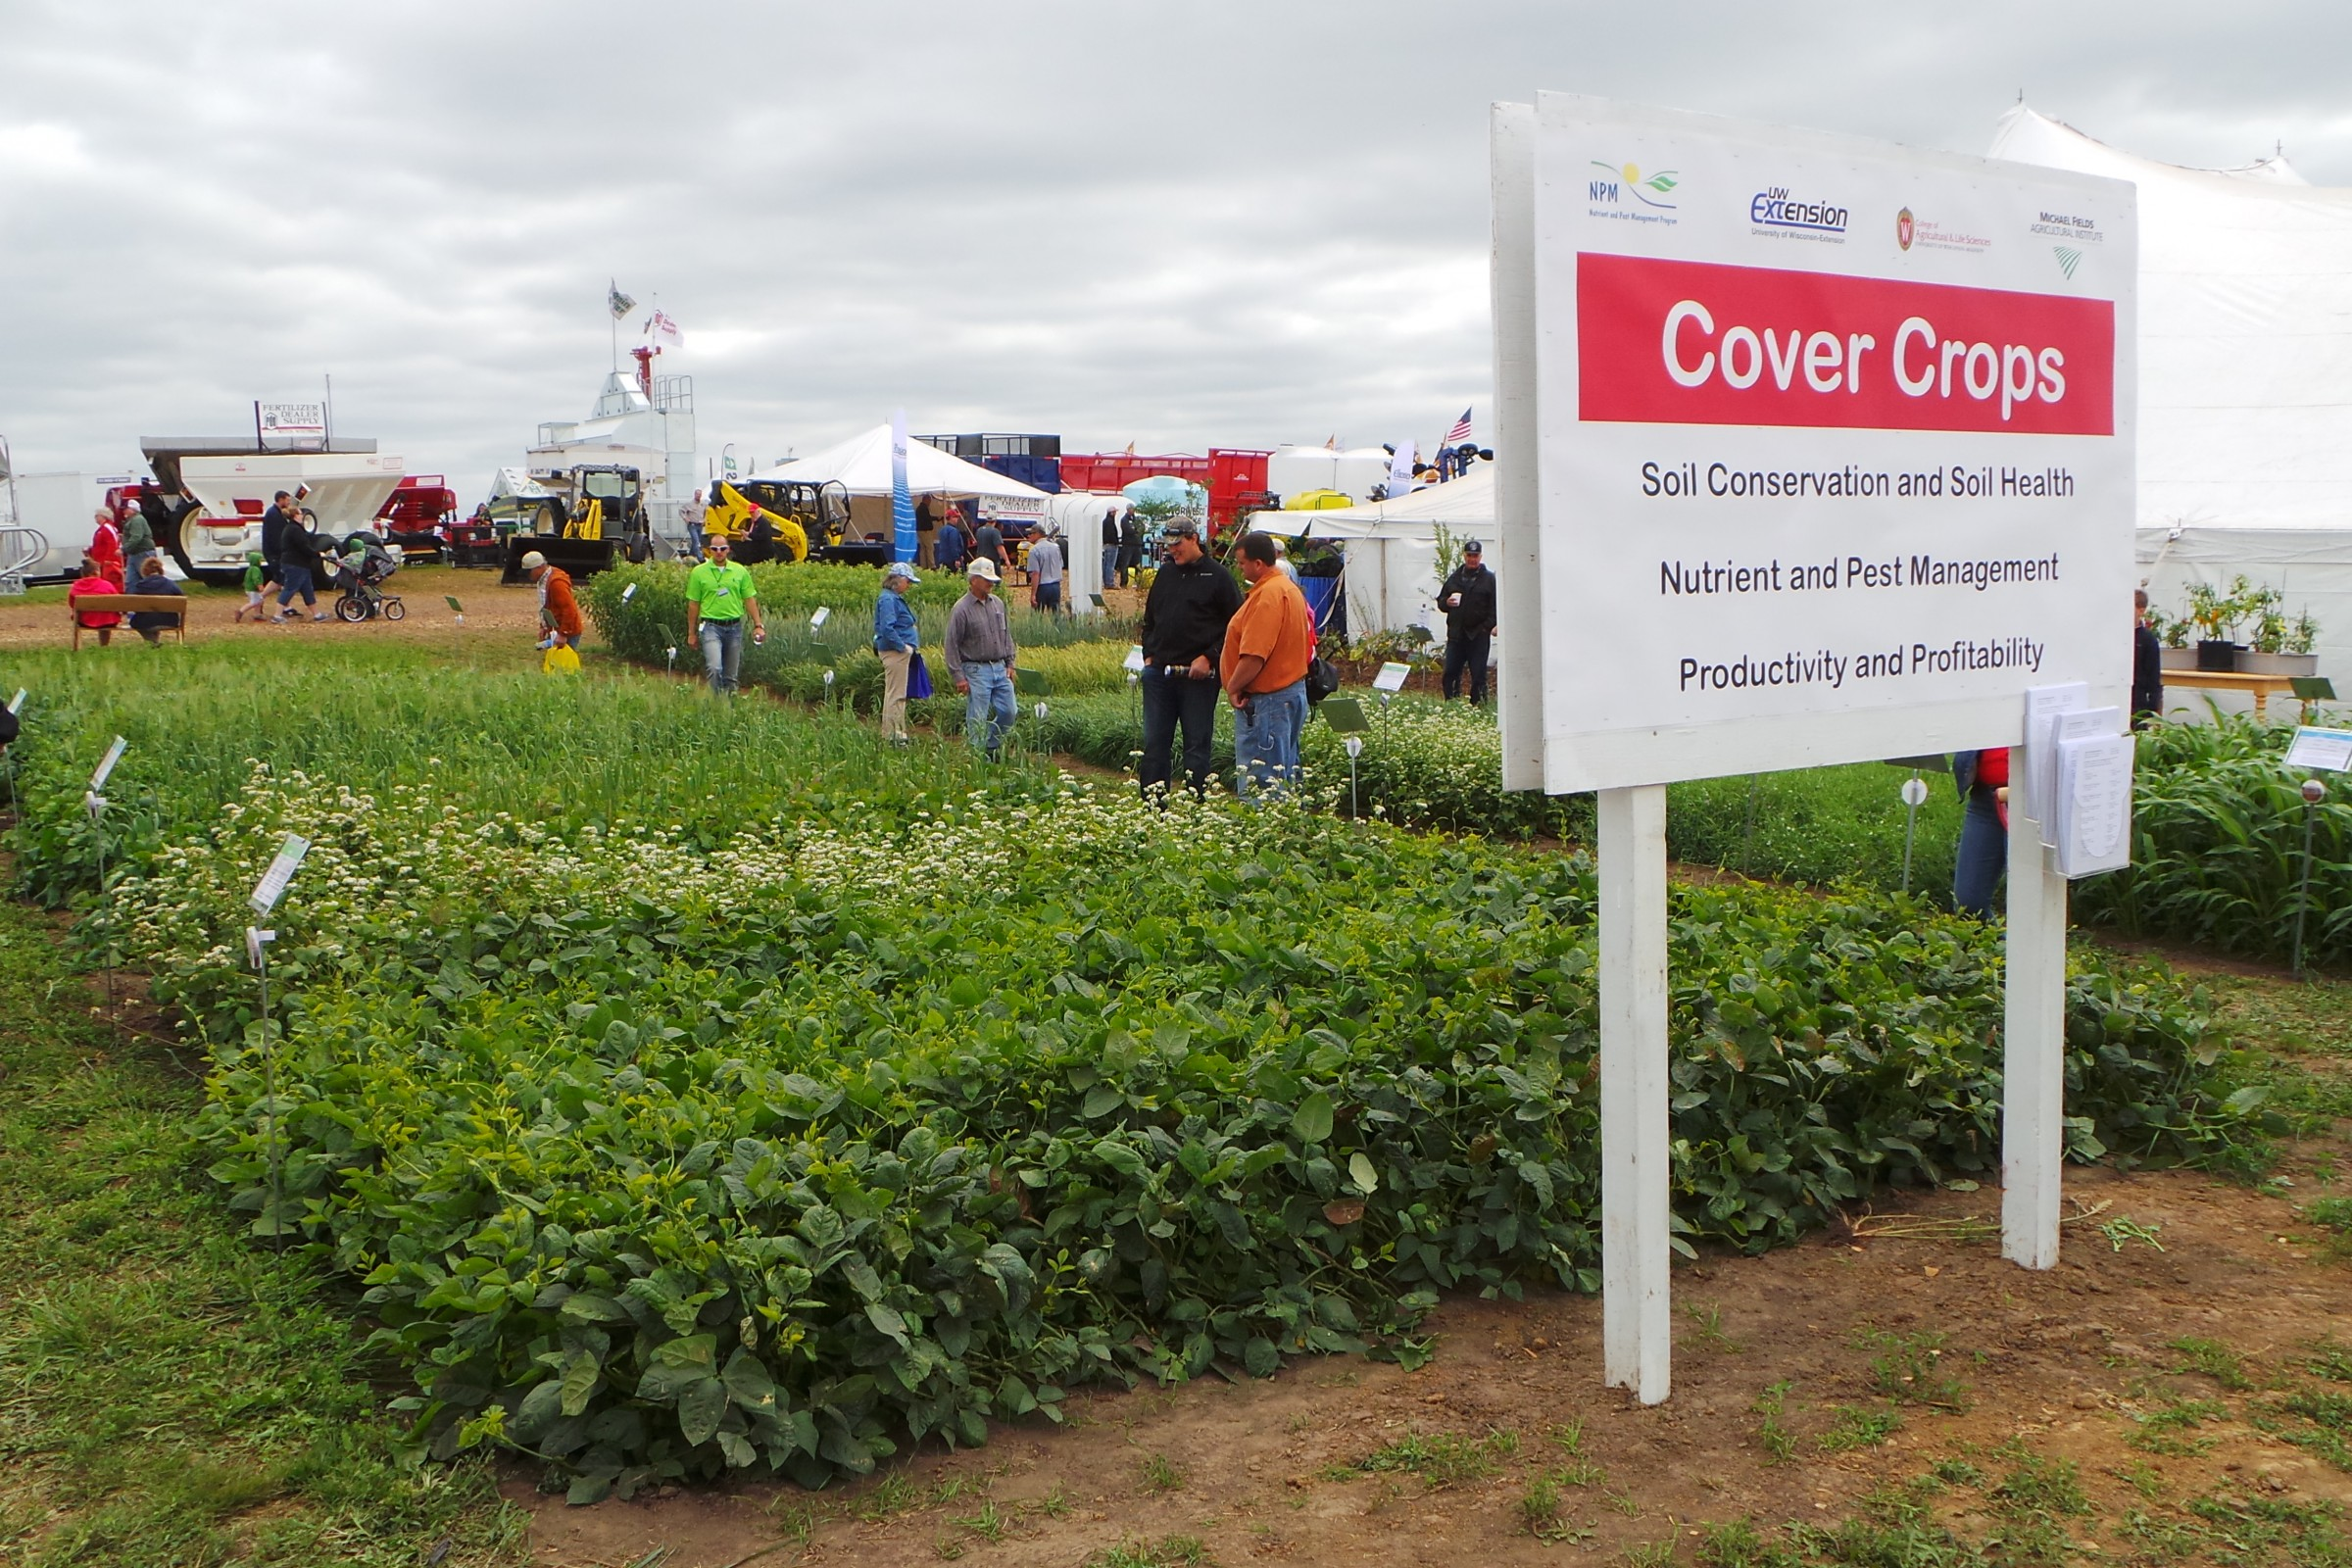 Cover crops on display